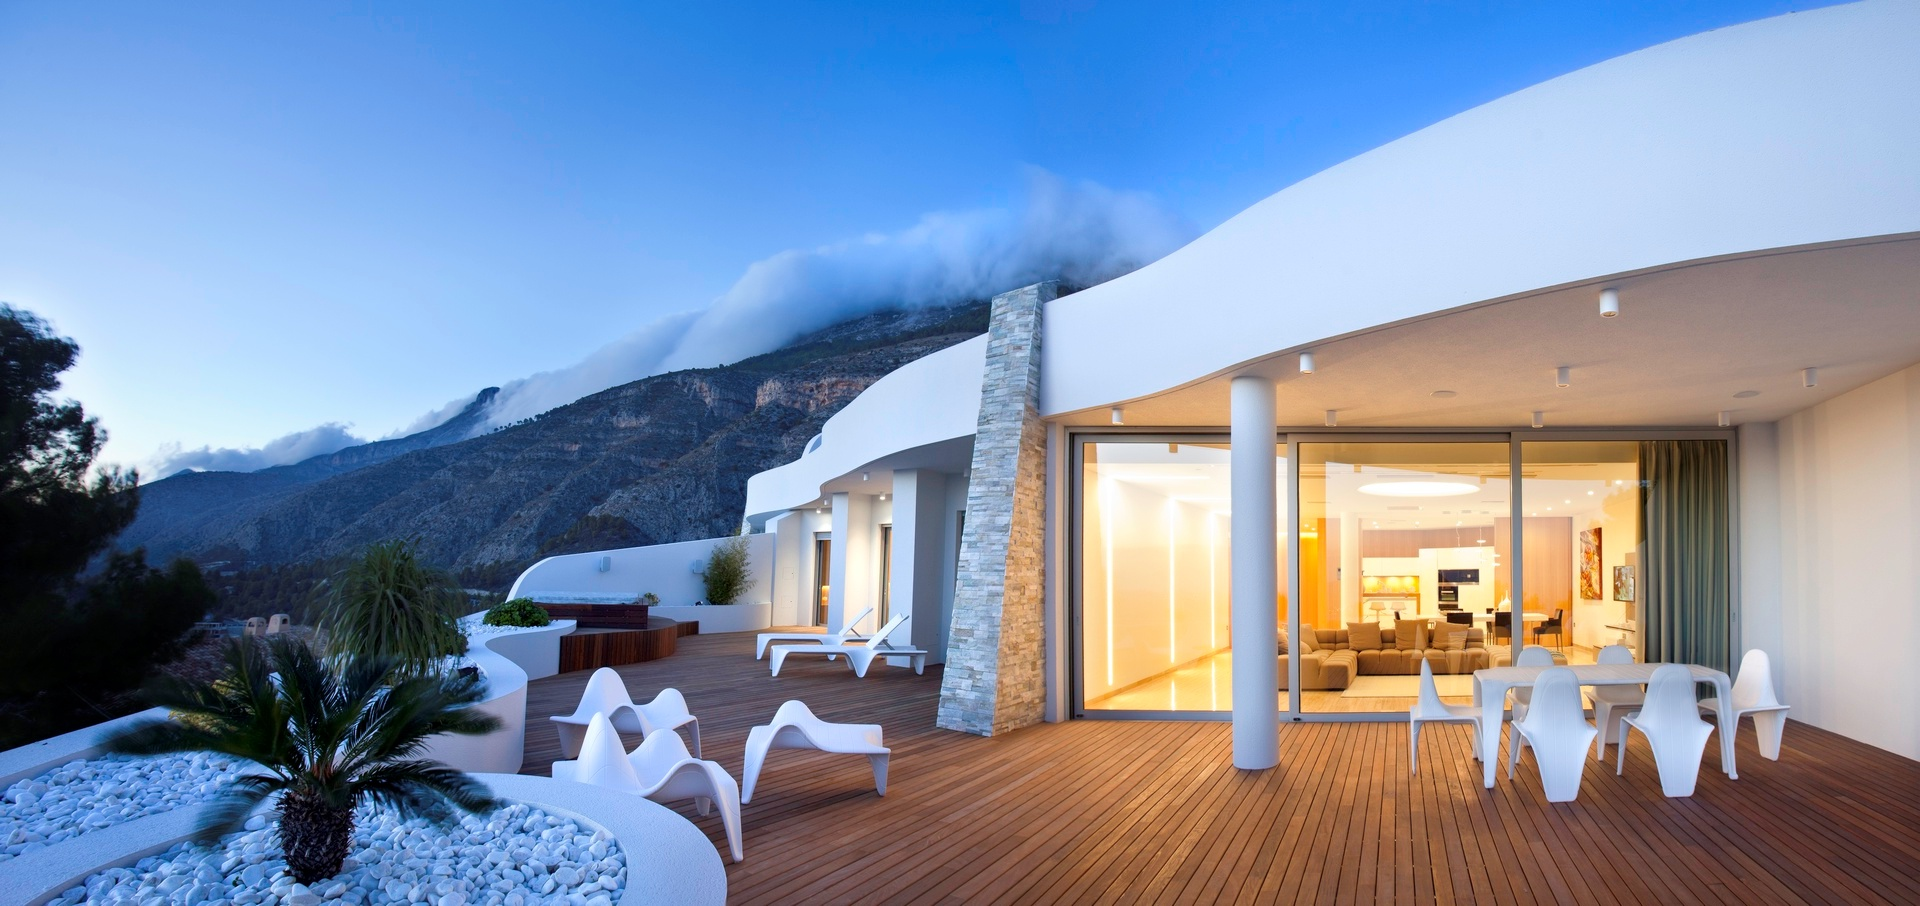 Newly developed residential on the Costa Blanca